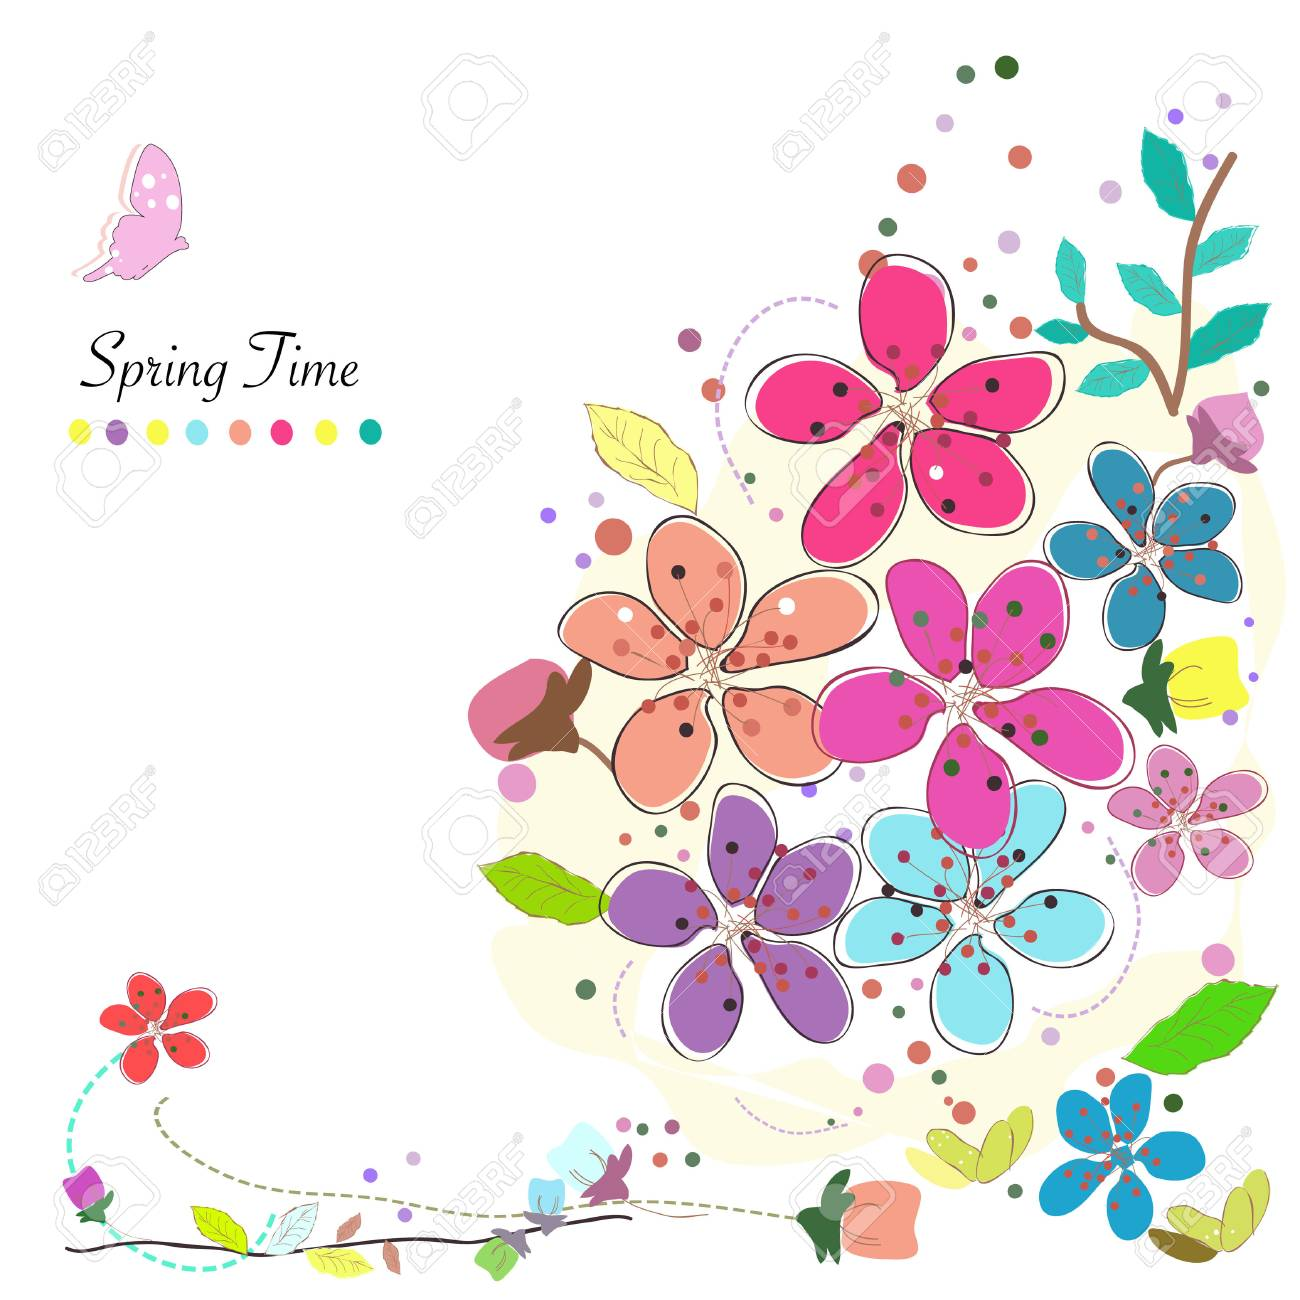 Spring time flowers background vector colorful abstract doodle. - 54715966